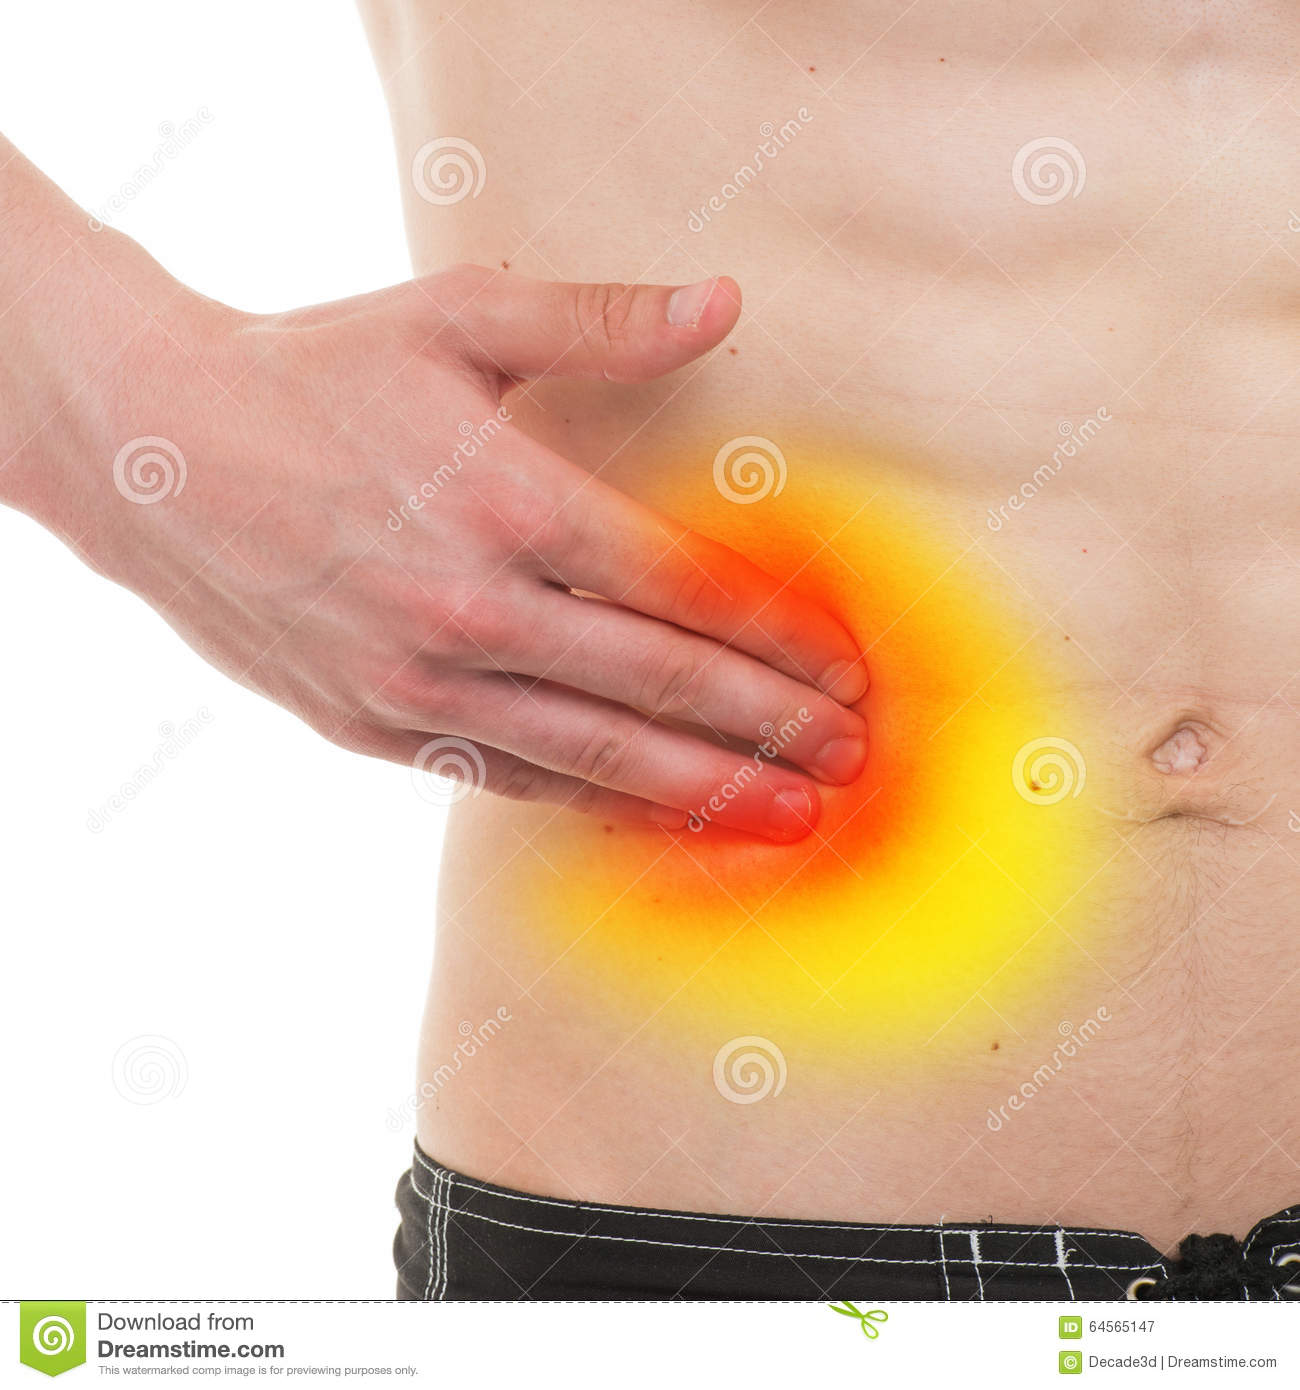 Photo Stock Douleur Abdominale Douleur Masculine De C T Droit D Anatomie D Isolement Sur Le Blanc Image64565147 on human body anatomy internal organs diagram right side